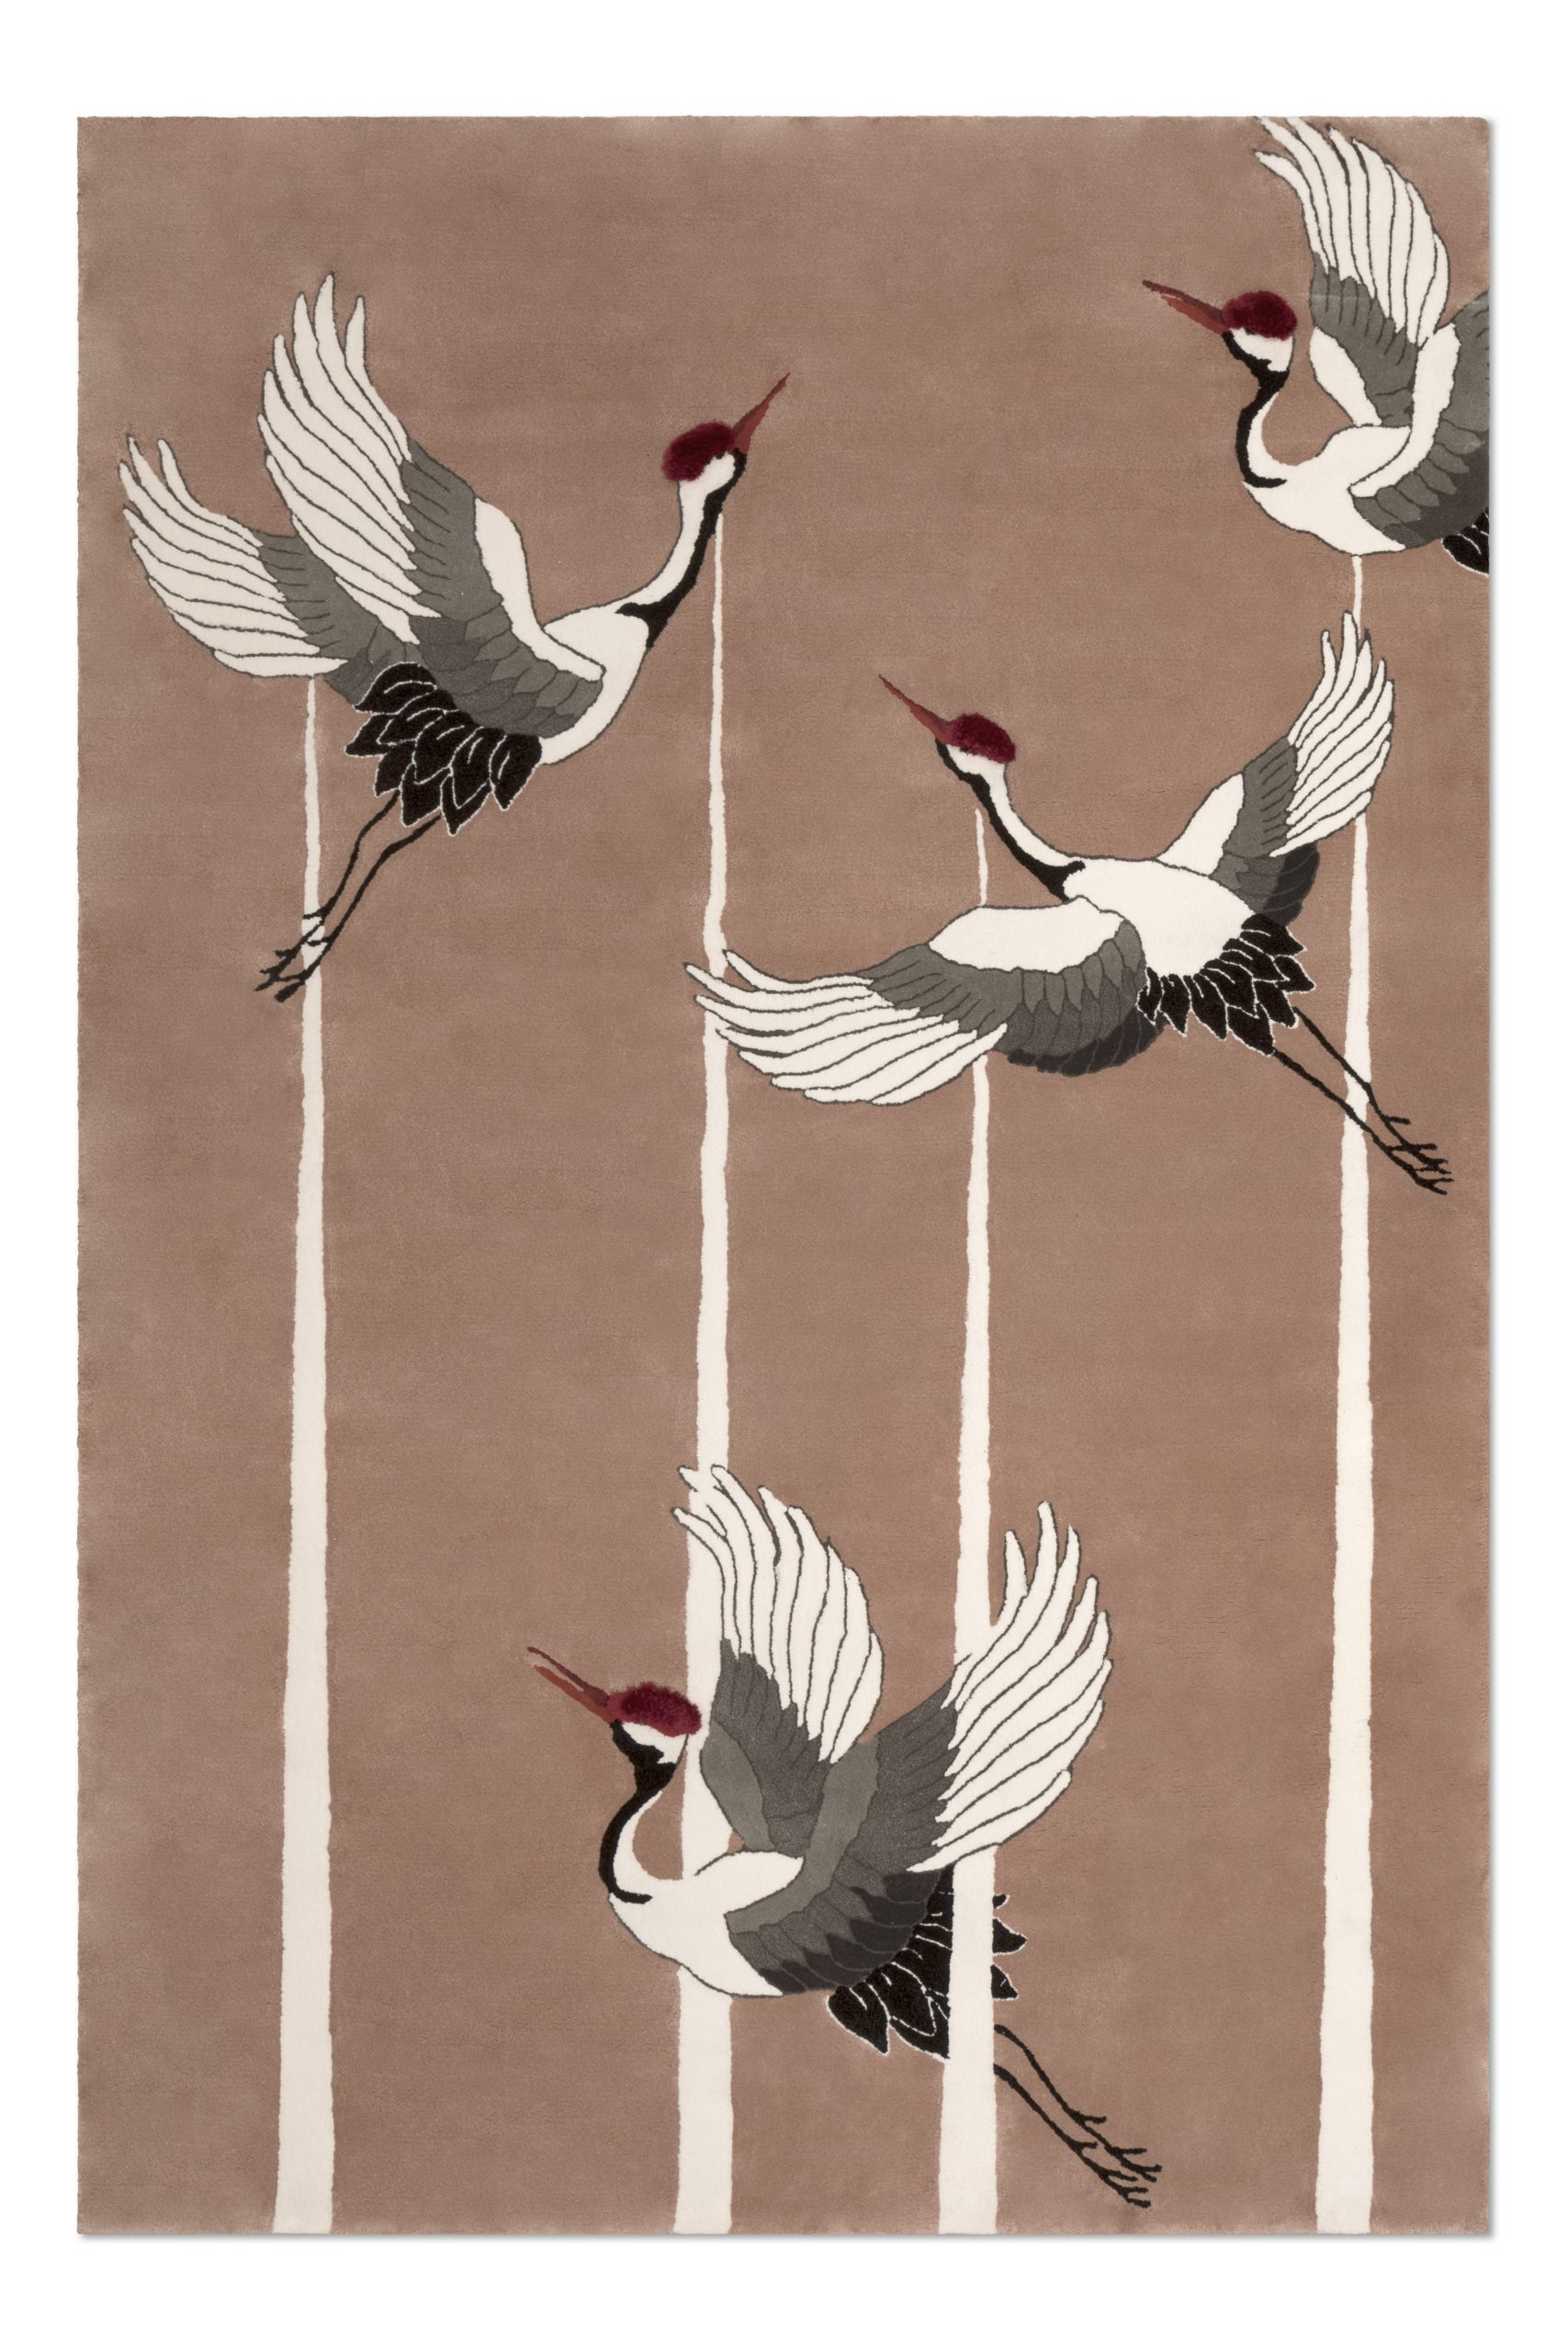 Modern Rugs Inspiration For The Perfect Summer Decor summer decor Modern Rugs Inspiration For The Perfect Summer Decor heron HR scaled